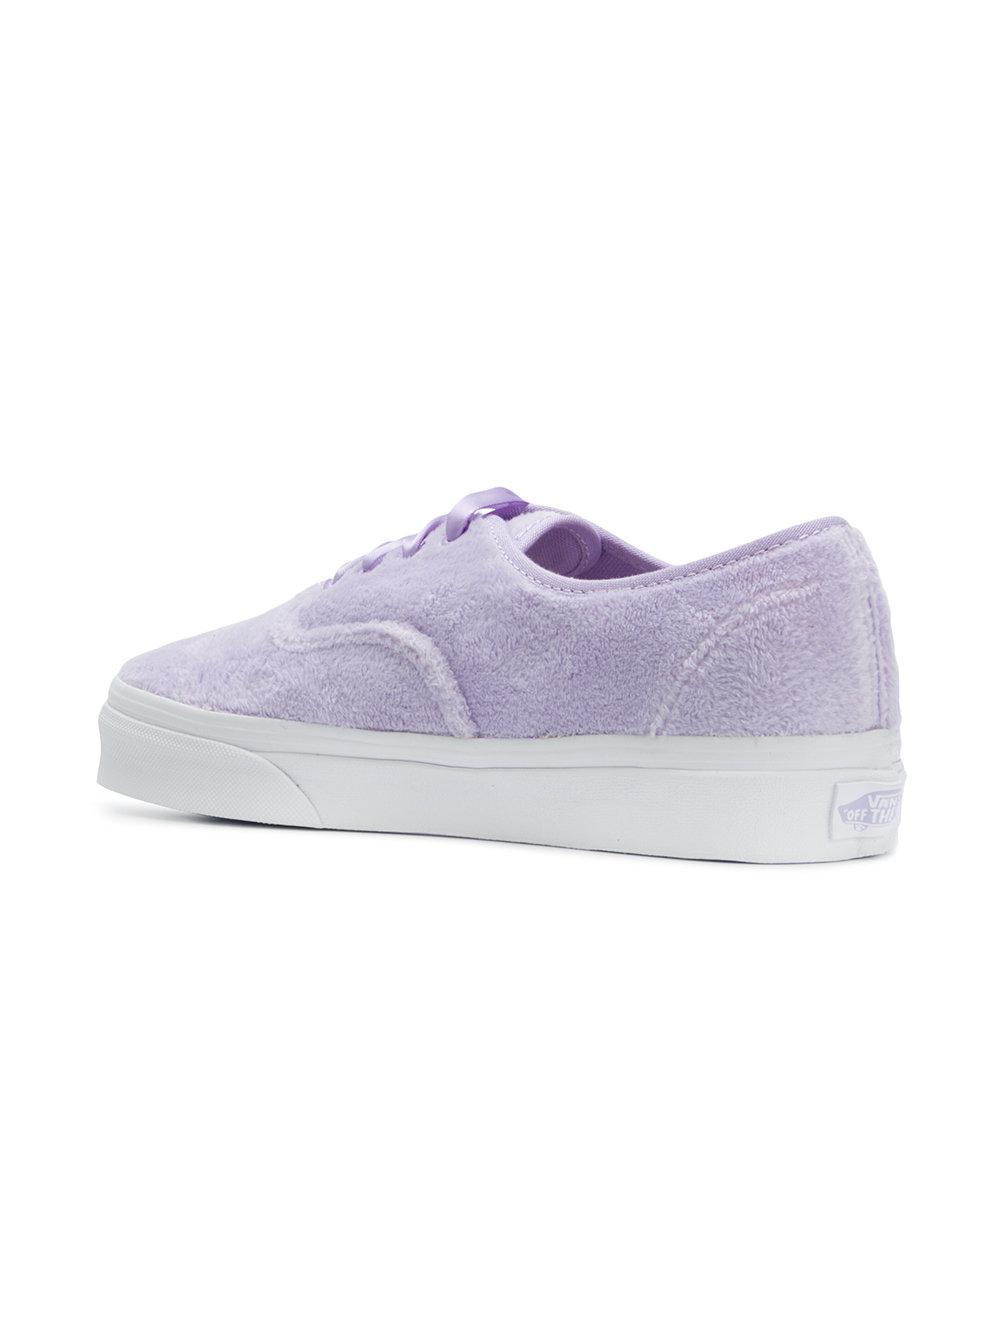 2f97e639a47 Lyst - Vans Authentic Furry Sneakers in Purple